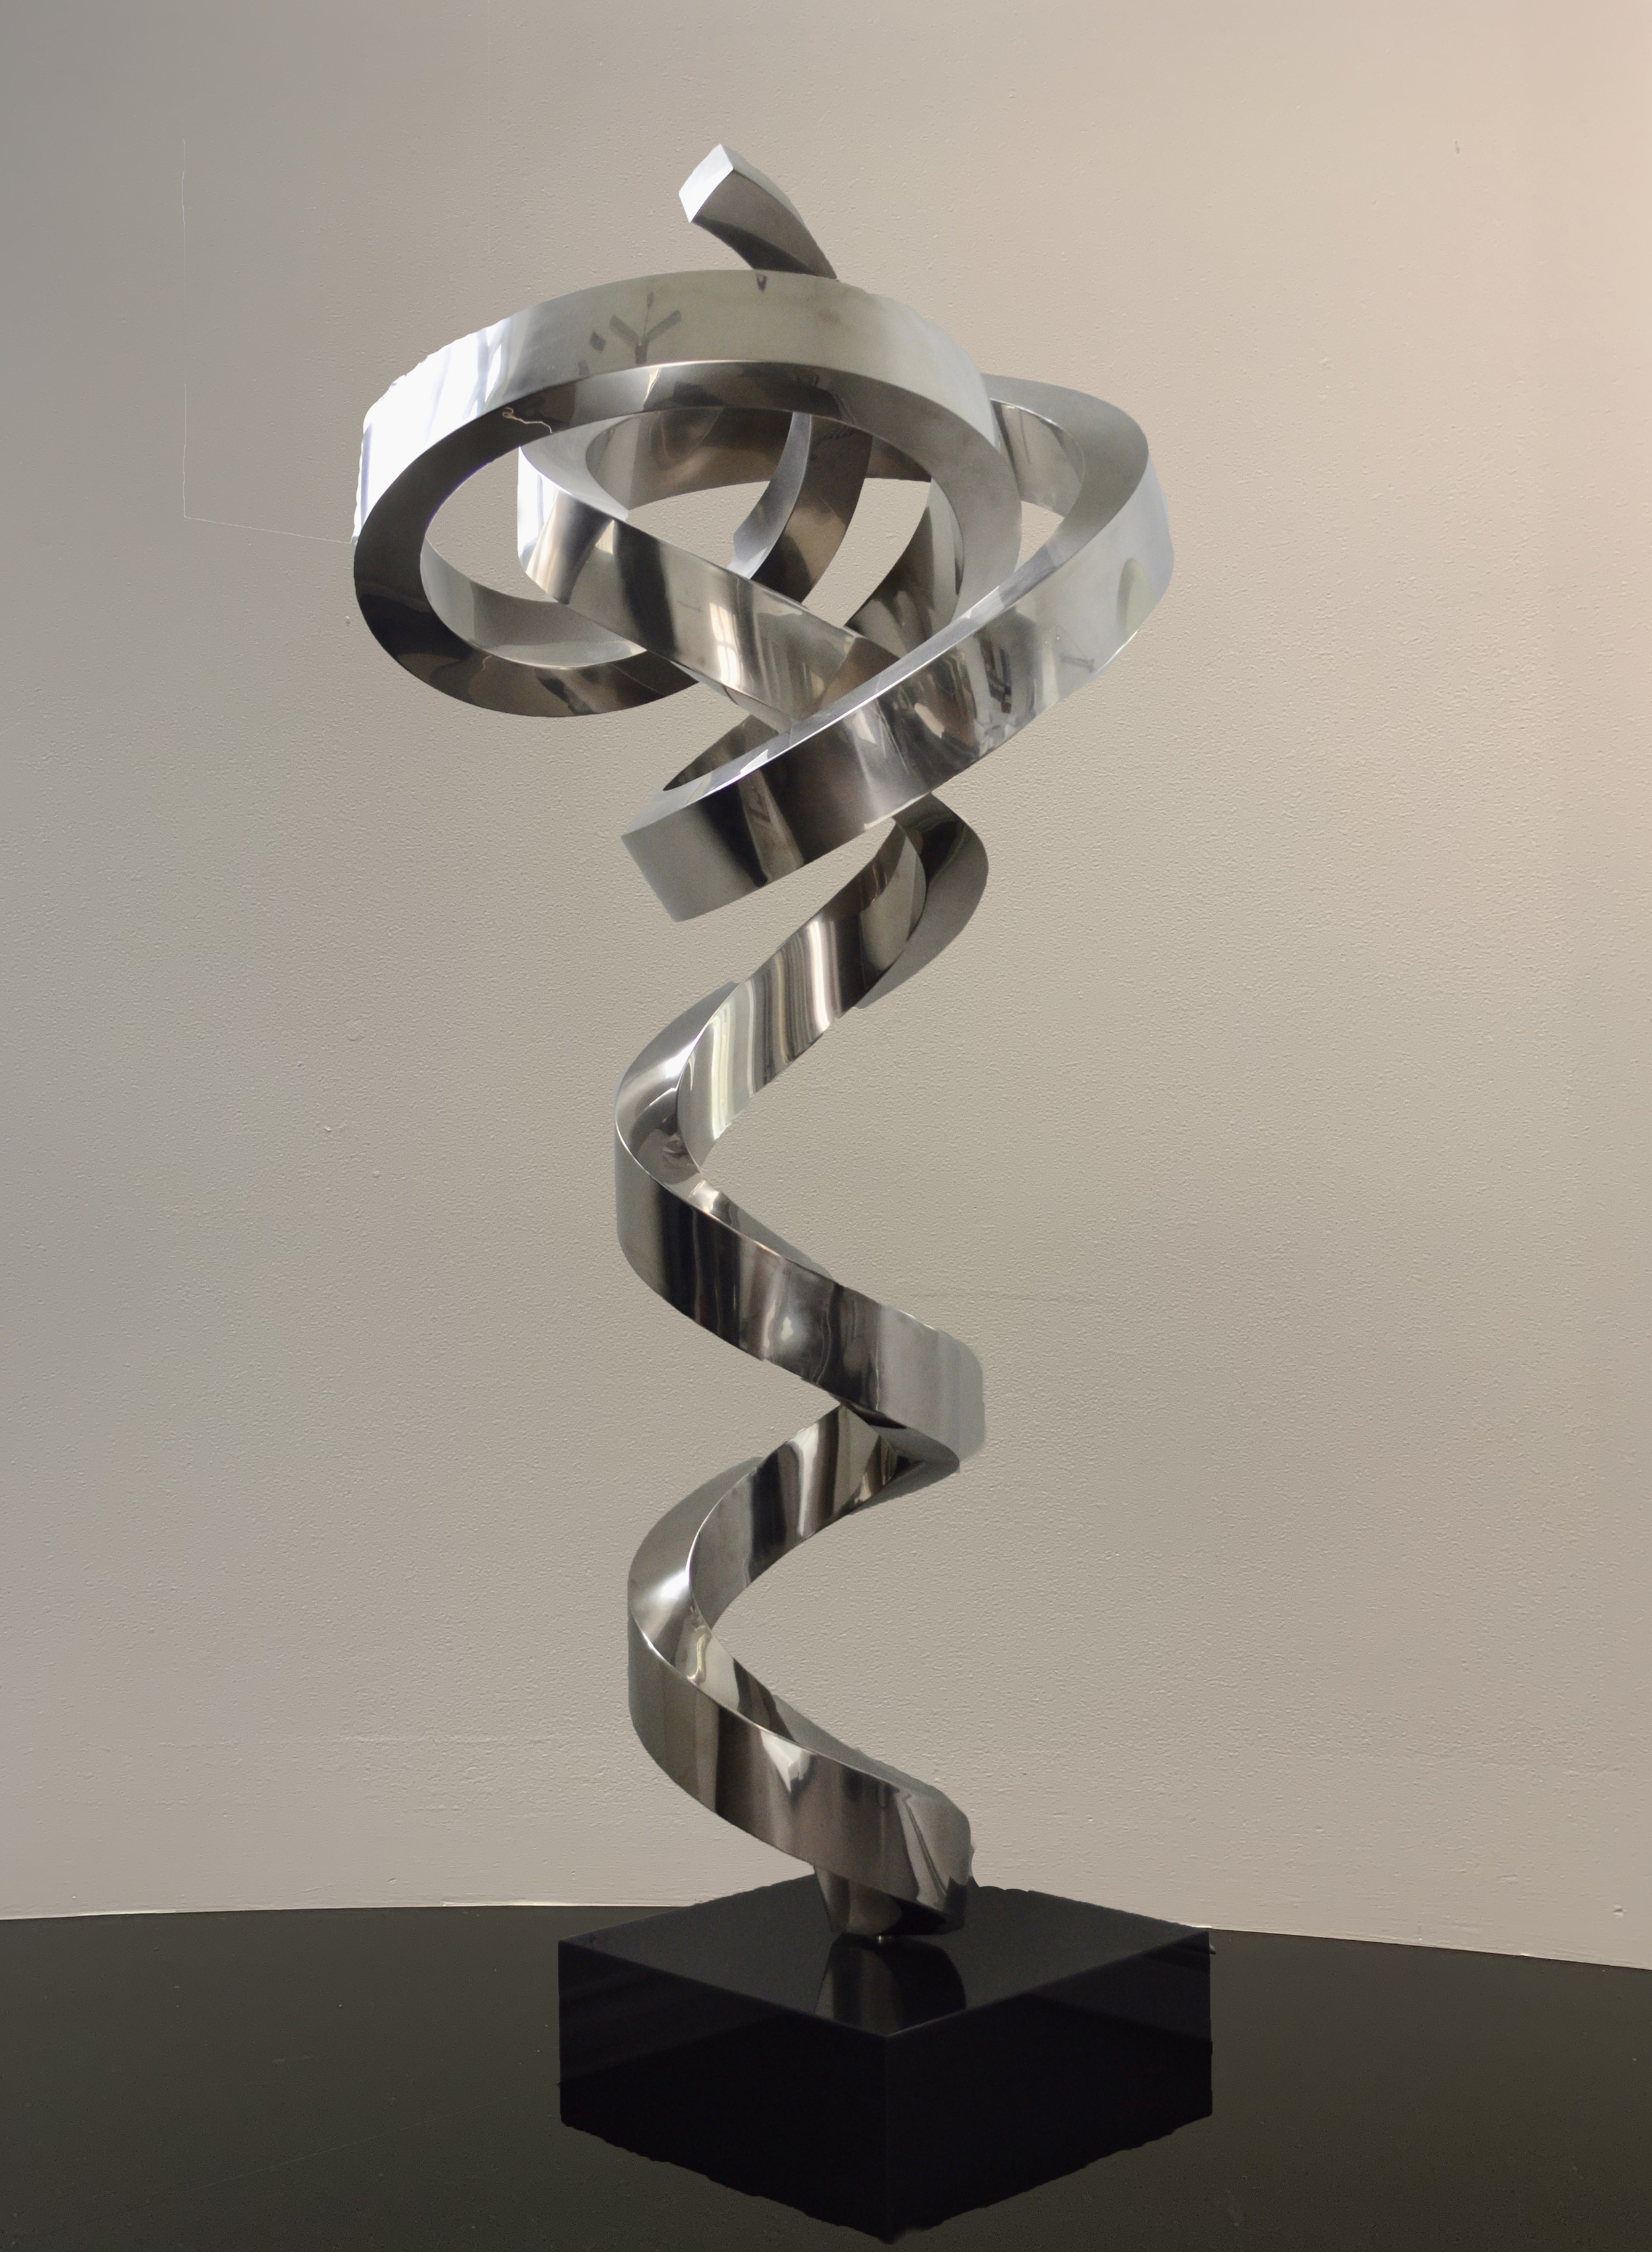 Ascenion_Stainless_Steel_Sculpture_Gino_Miles